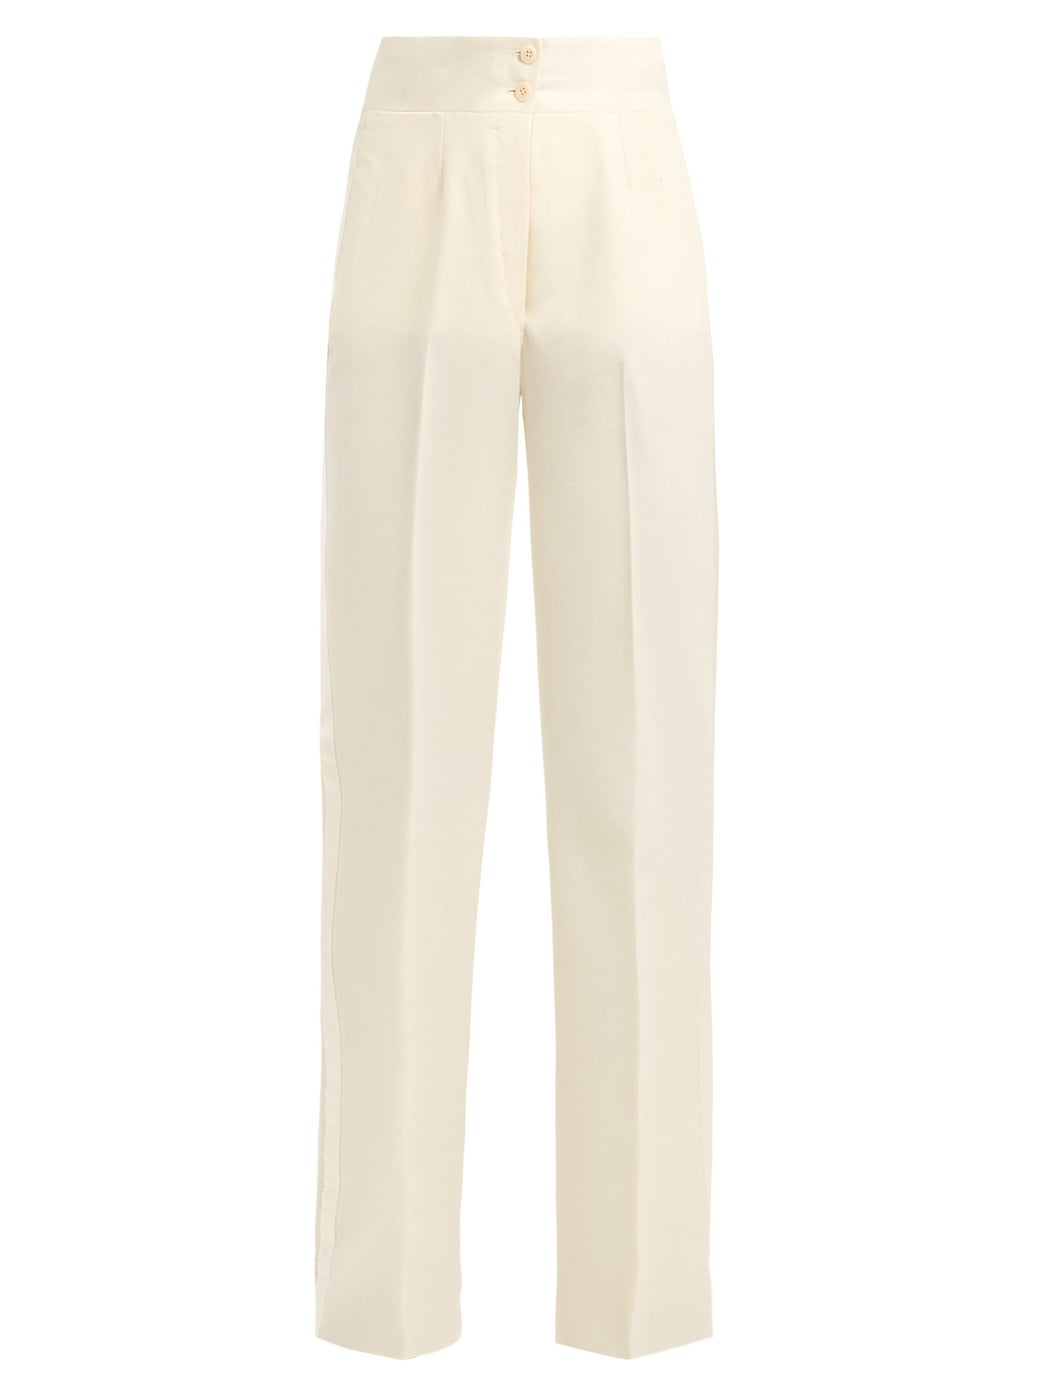 giuliva-heritage-collection-pants.jpg